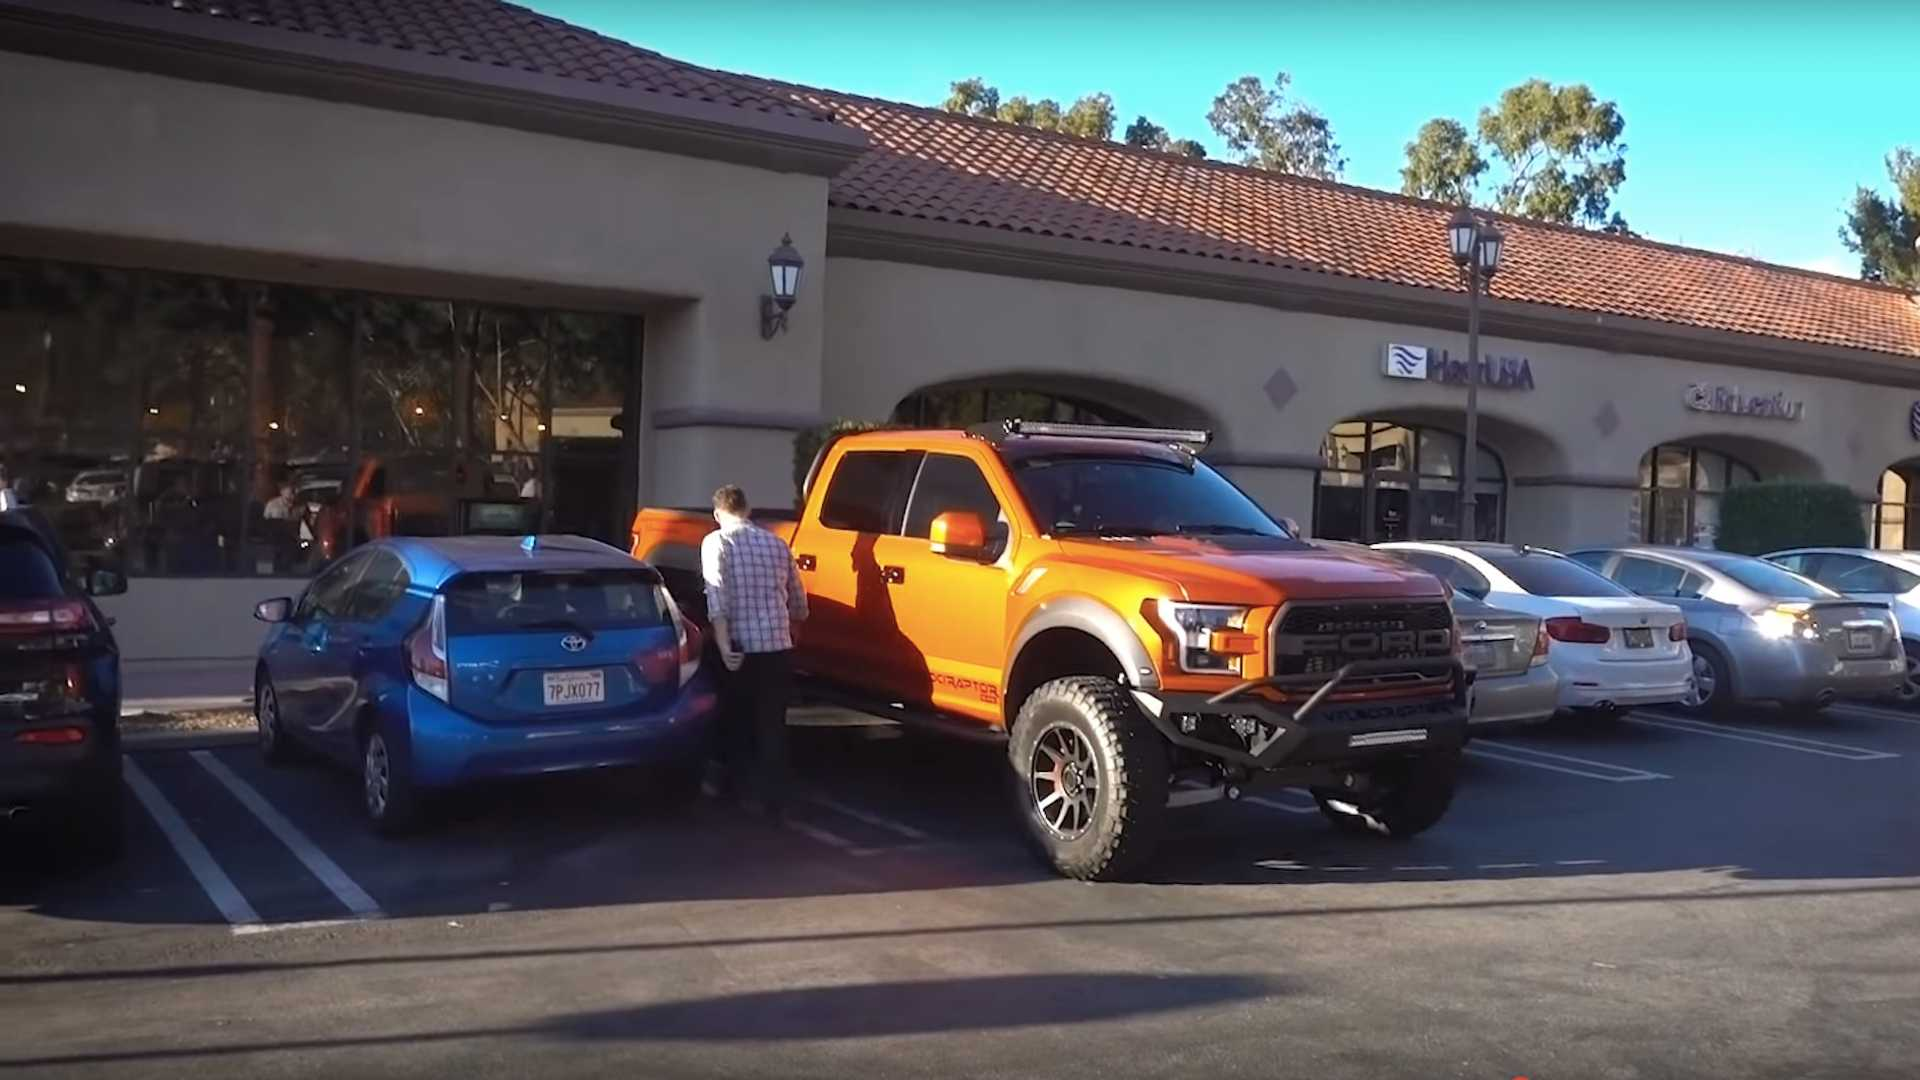 Hennessey Velociraptor 6x6 >> Hennessey Velociraptor 6x6 Looks Equally Intimidating And Cool